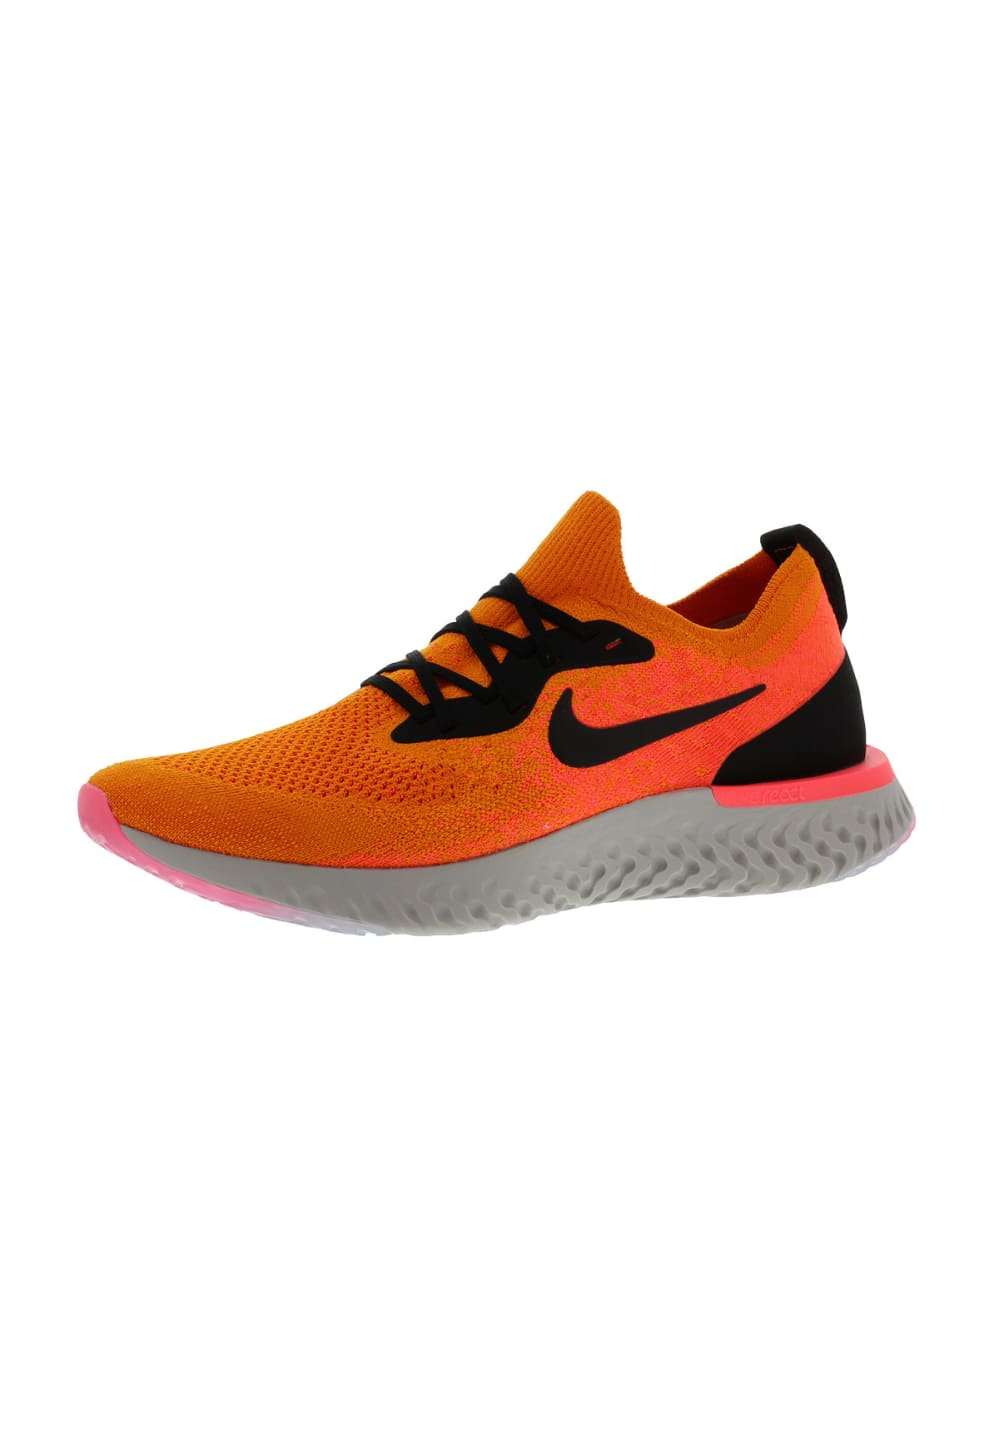 1d4115a856316 Nike Odyssey React - Running shoes for Women - Orange